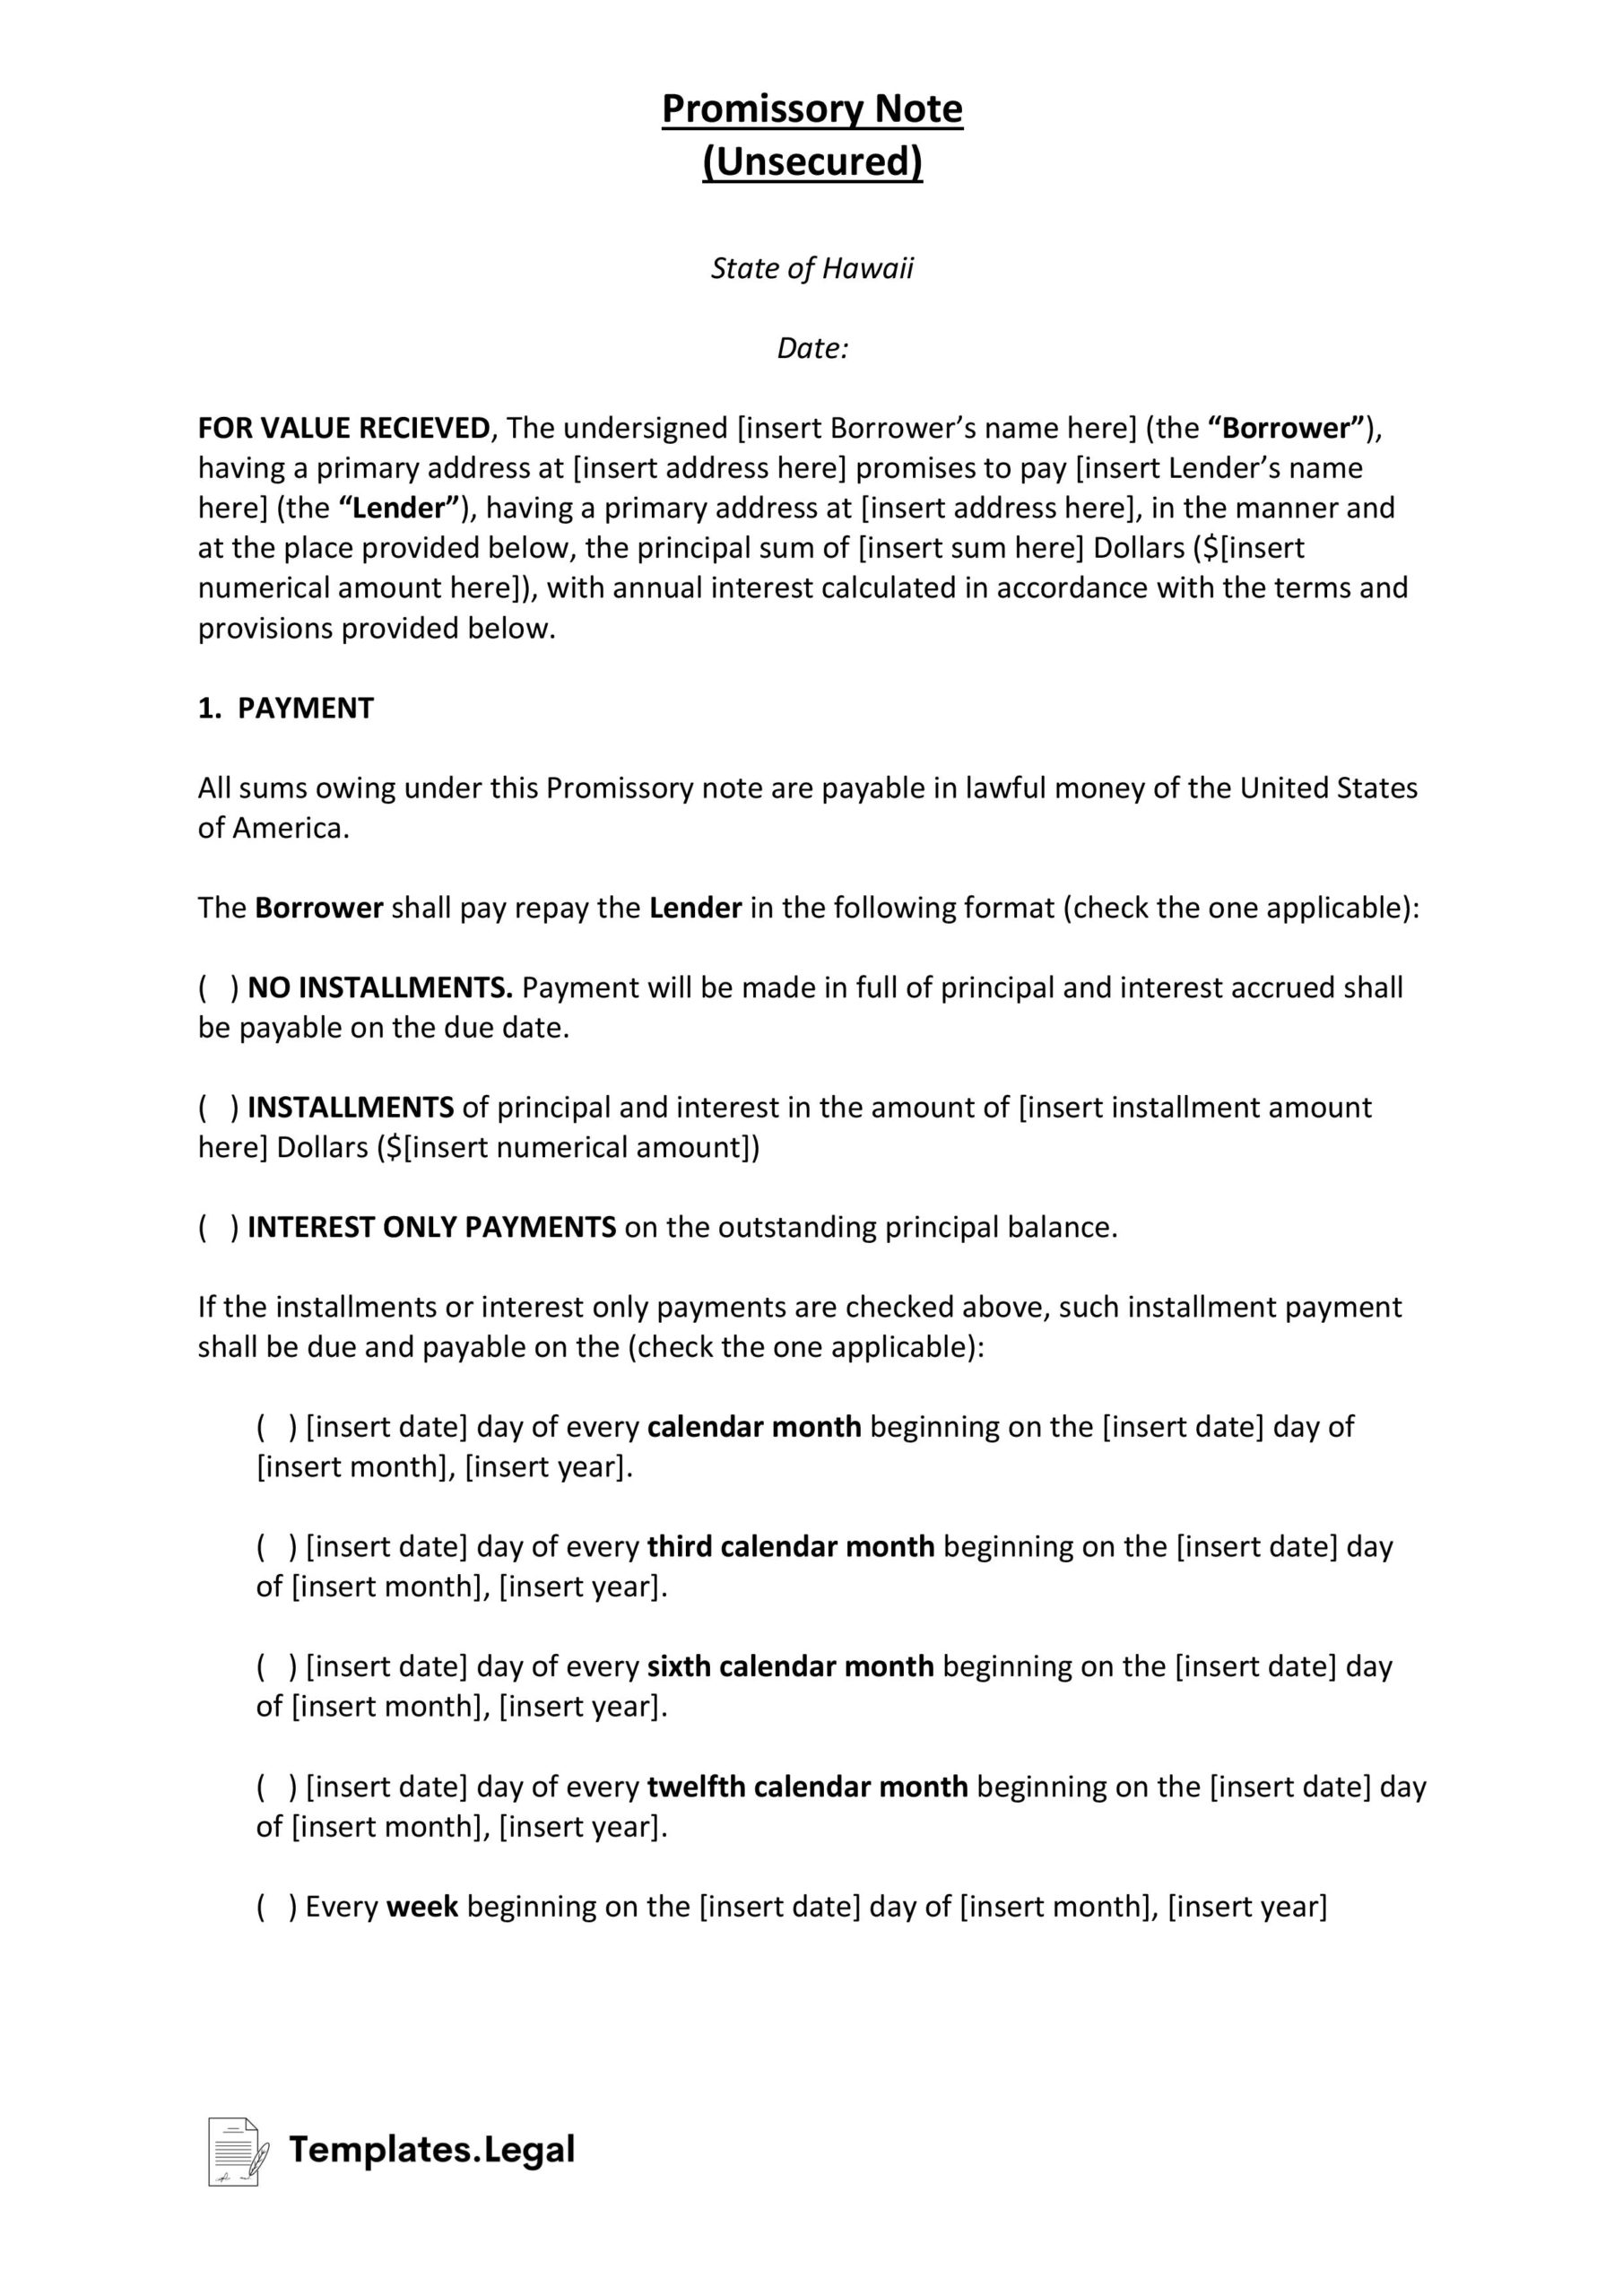 Hawaii Unsecured Promissory Note - Templates.Legal